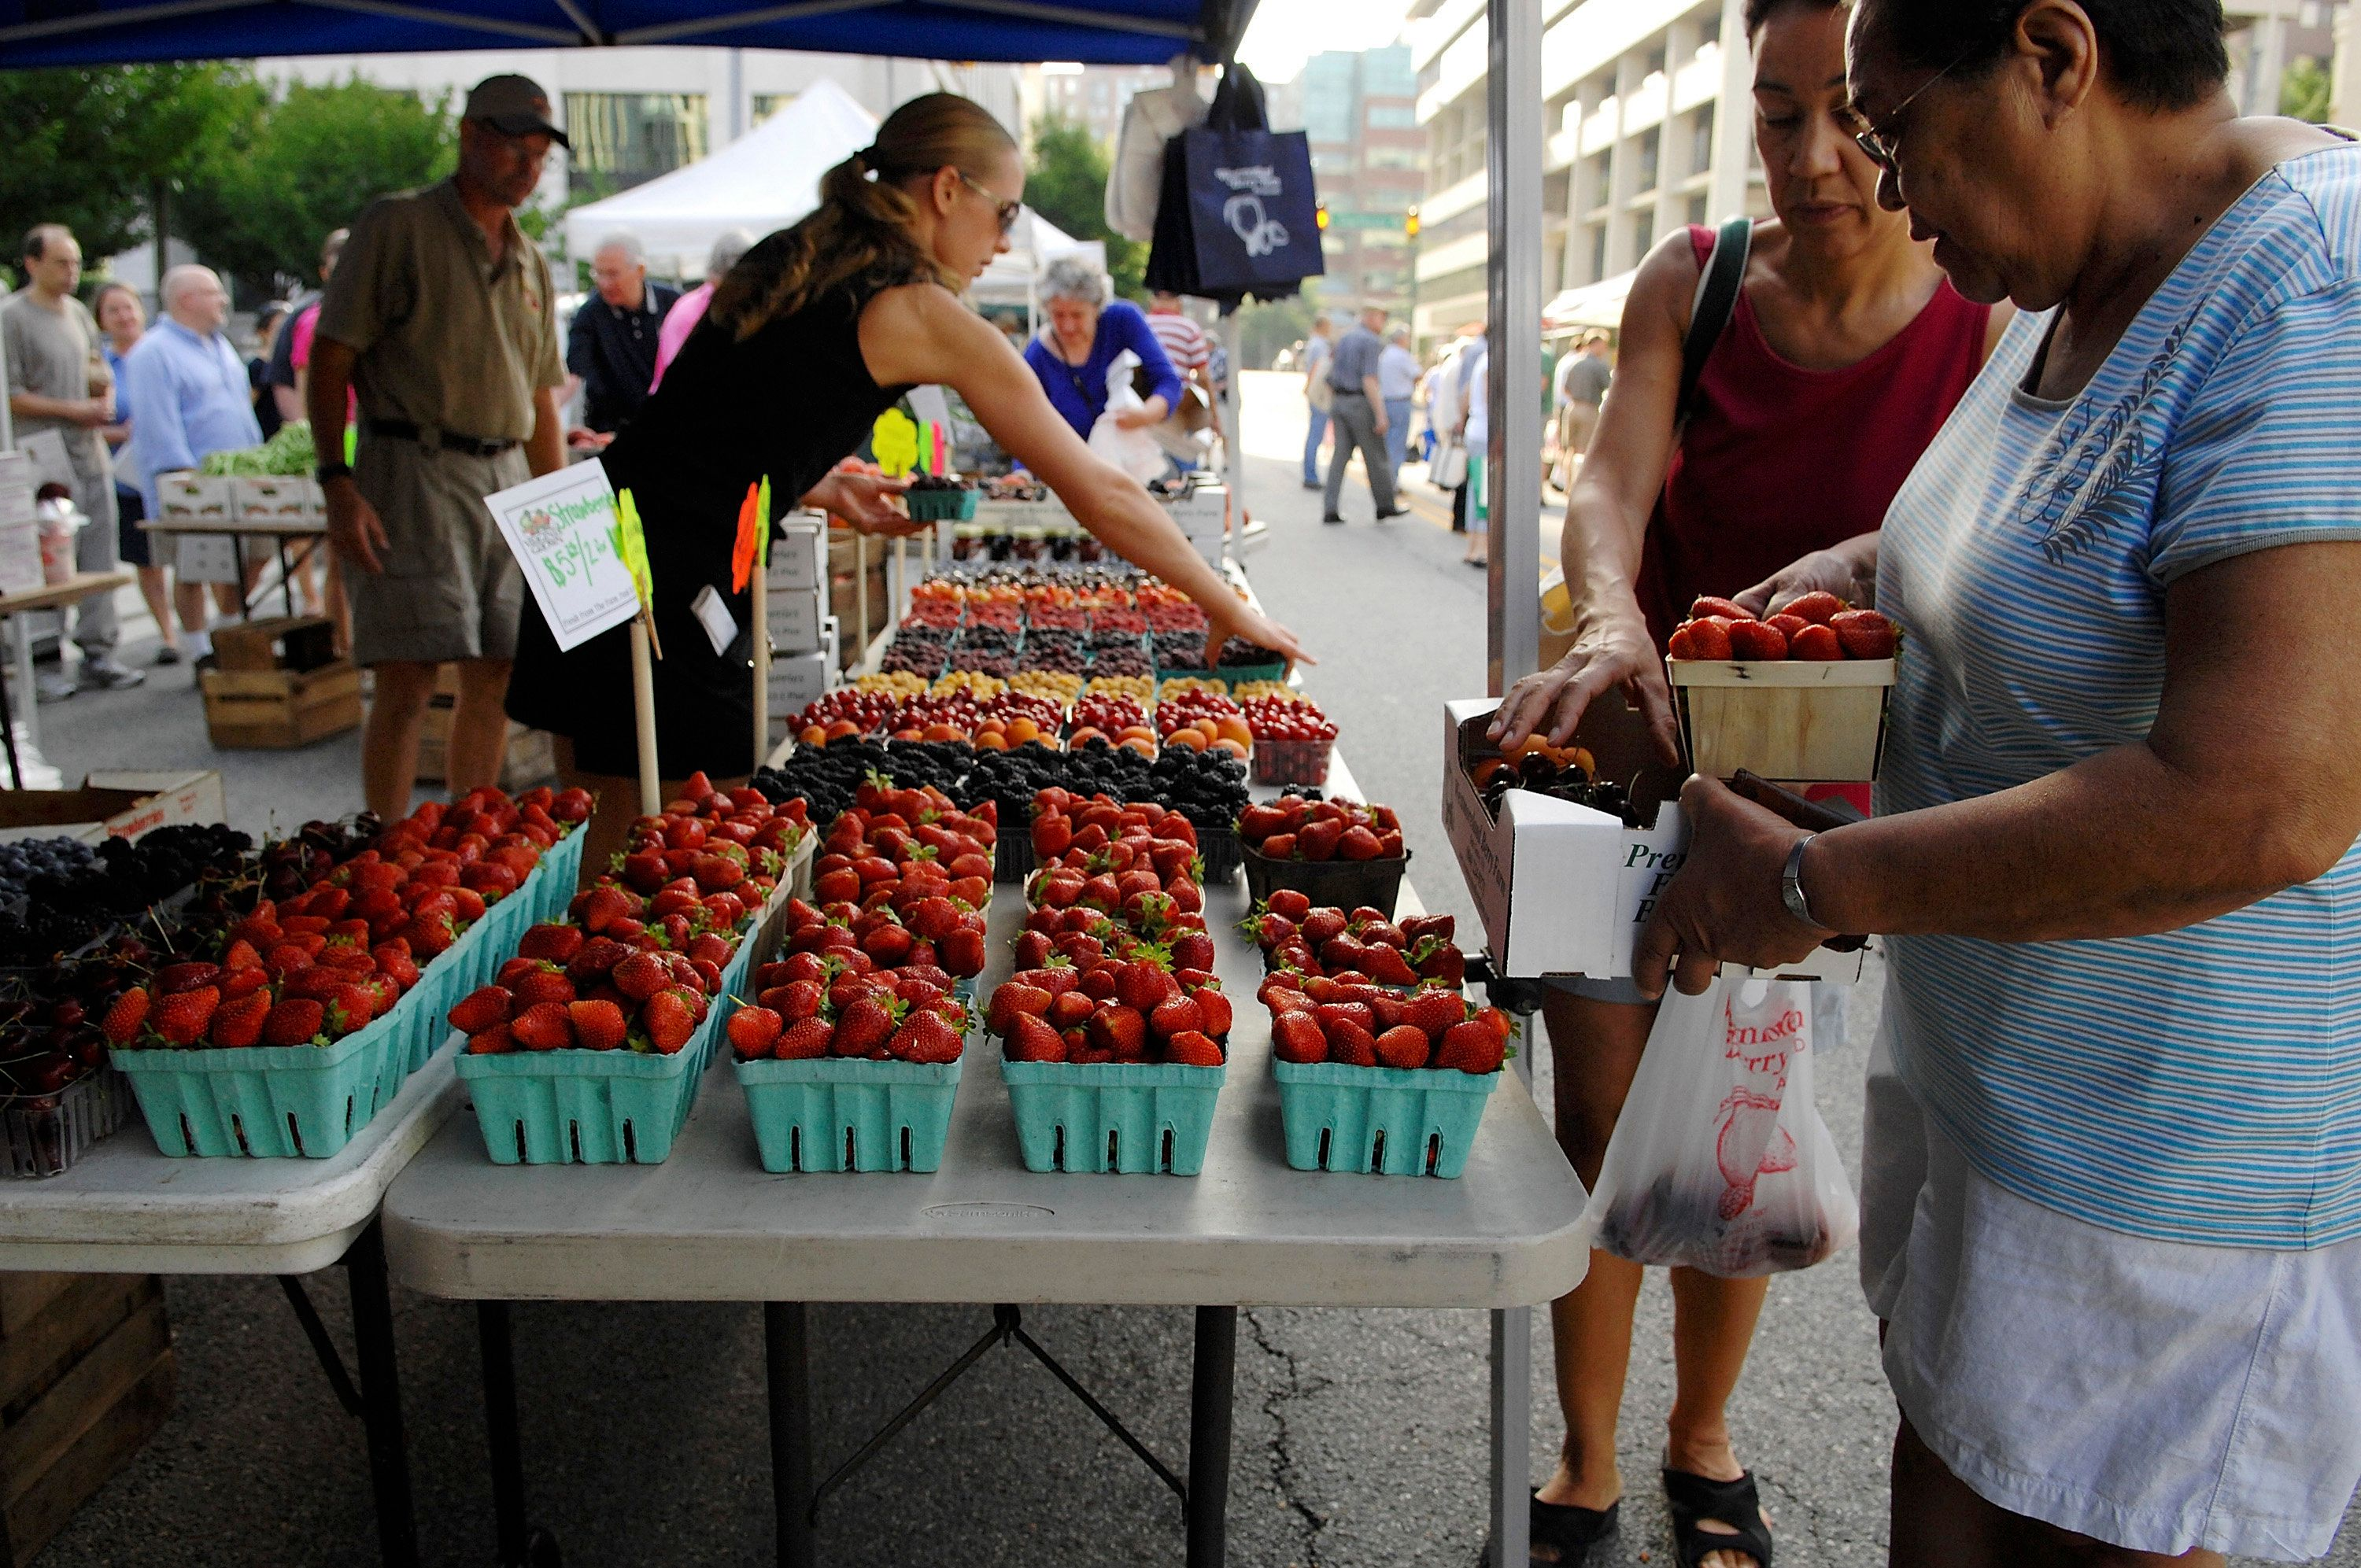 Customers select strawberries at the Westmoreland Berry Farm stand at the Arlington Farmers' Market in Arlington, Virginia in this picture taken June 28, 2008. While price hikes are rippling through farmers' markets across the United States, they are doing little to deter shoppers looking for local produce. Picture taken June 28. REUTERS/Jonathan Ernst   (UNITED STATES)  To match feature FOOD-USA/FARMERSMARKET